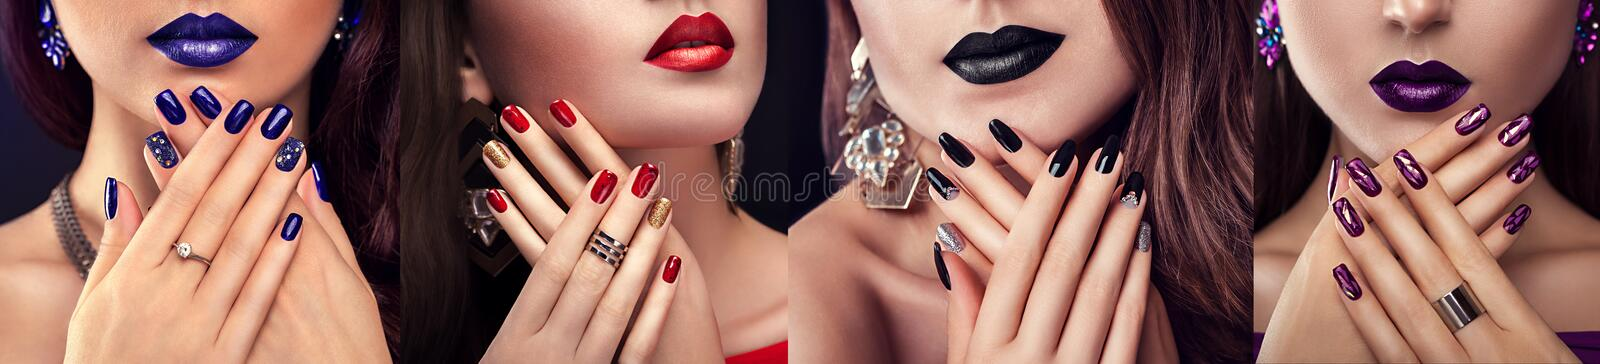 Beauty fashion model with different make-up and nail design wearing jewelry. Set of manicure. Four stylish looks royalty free stock photography